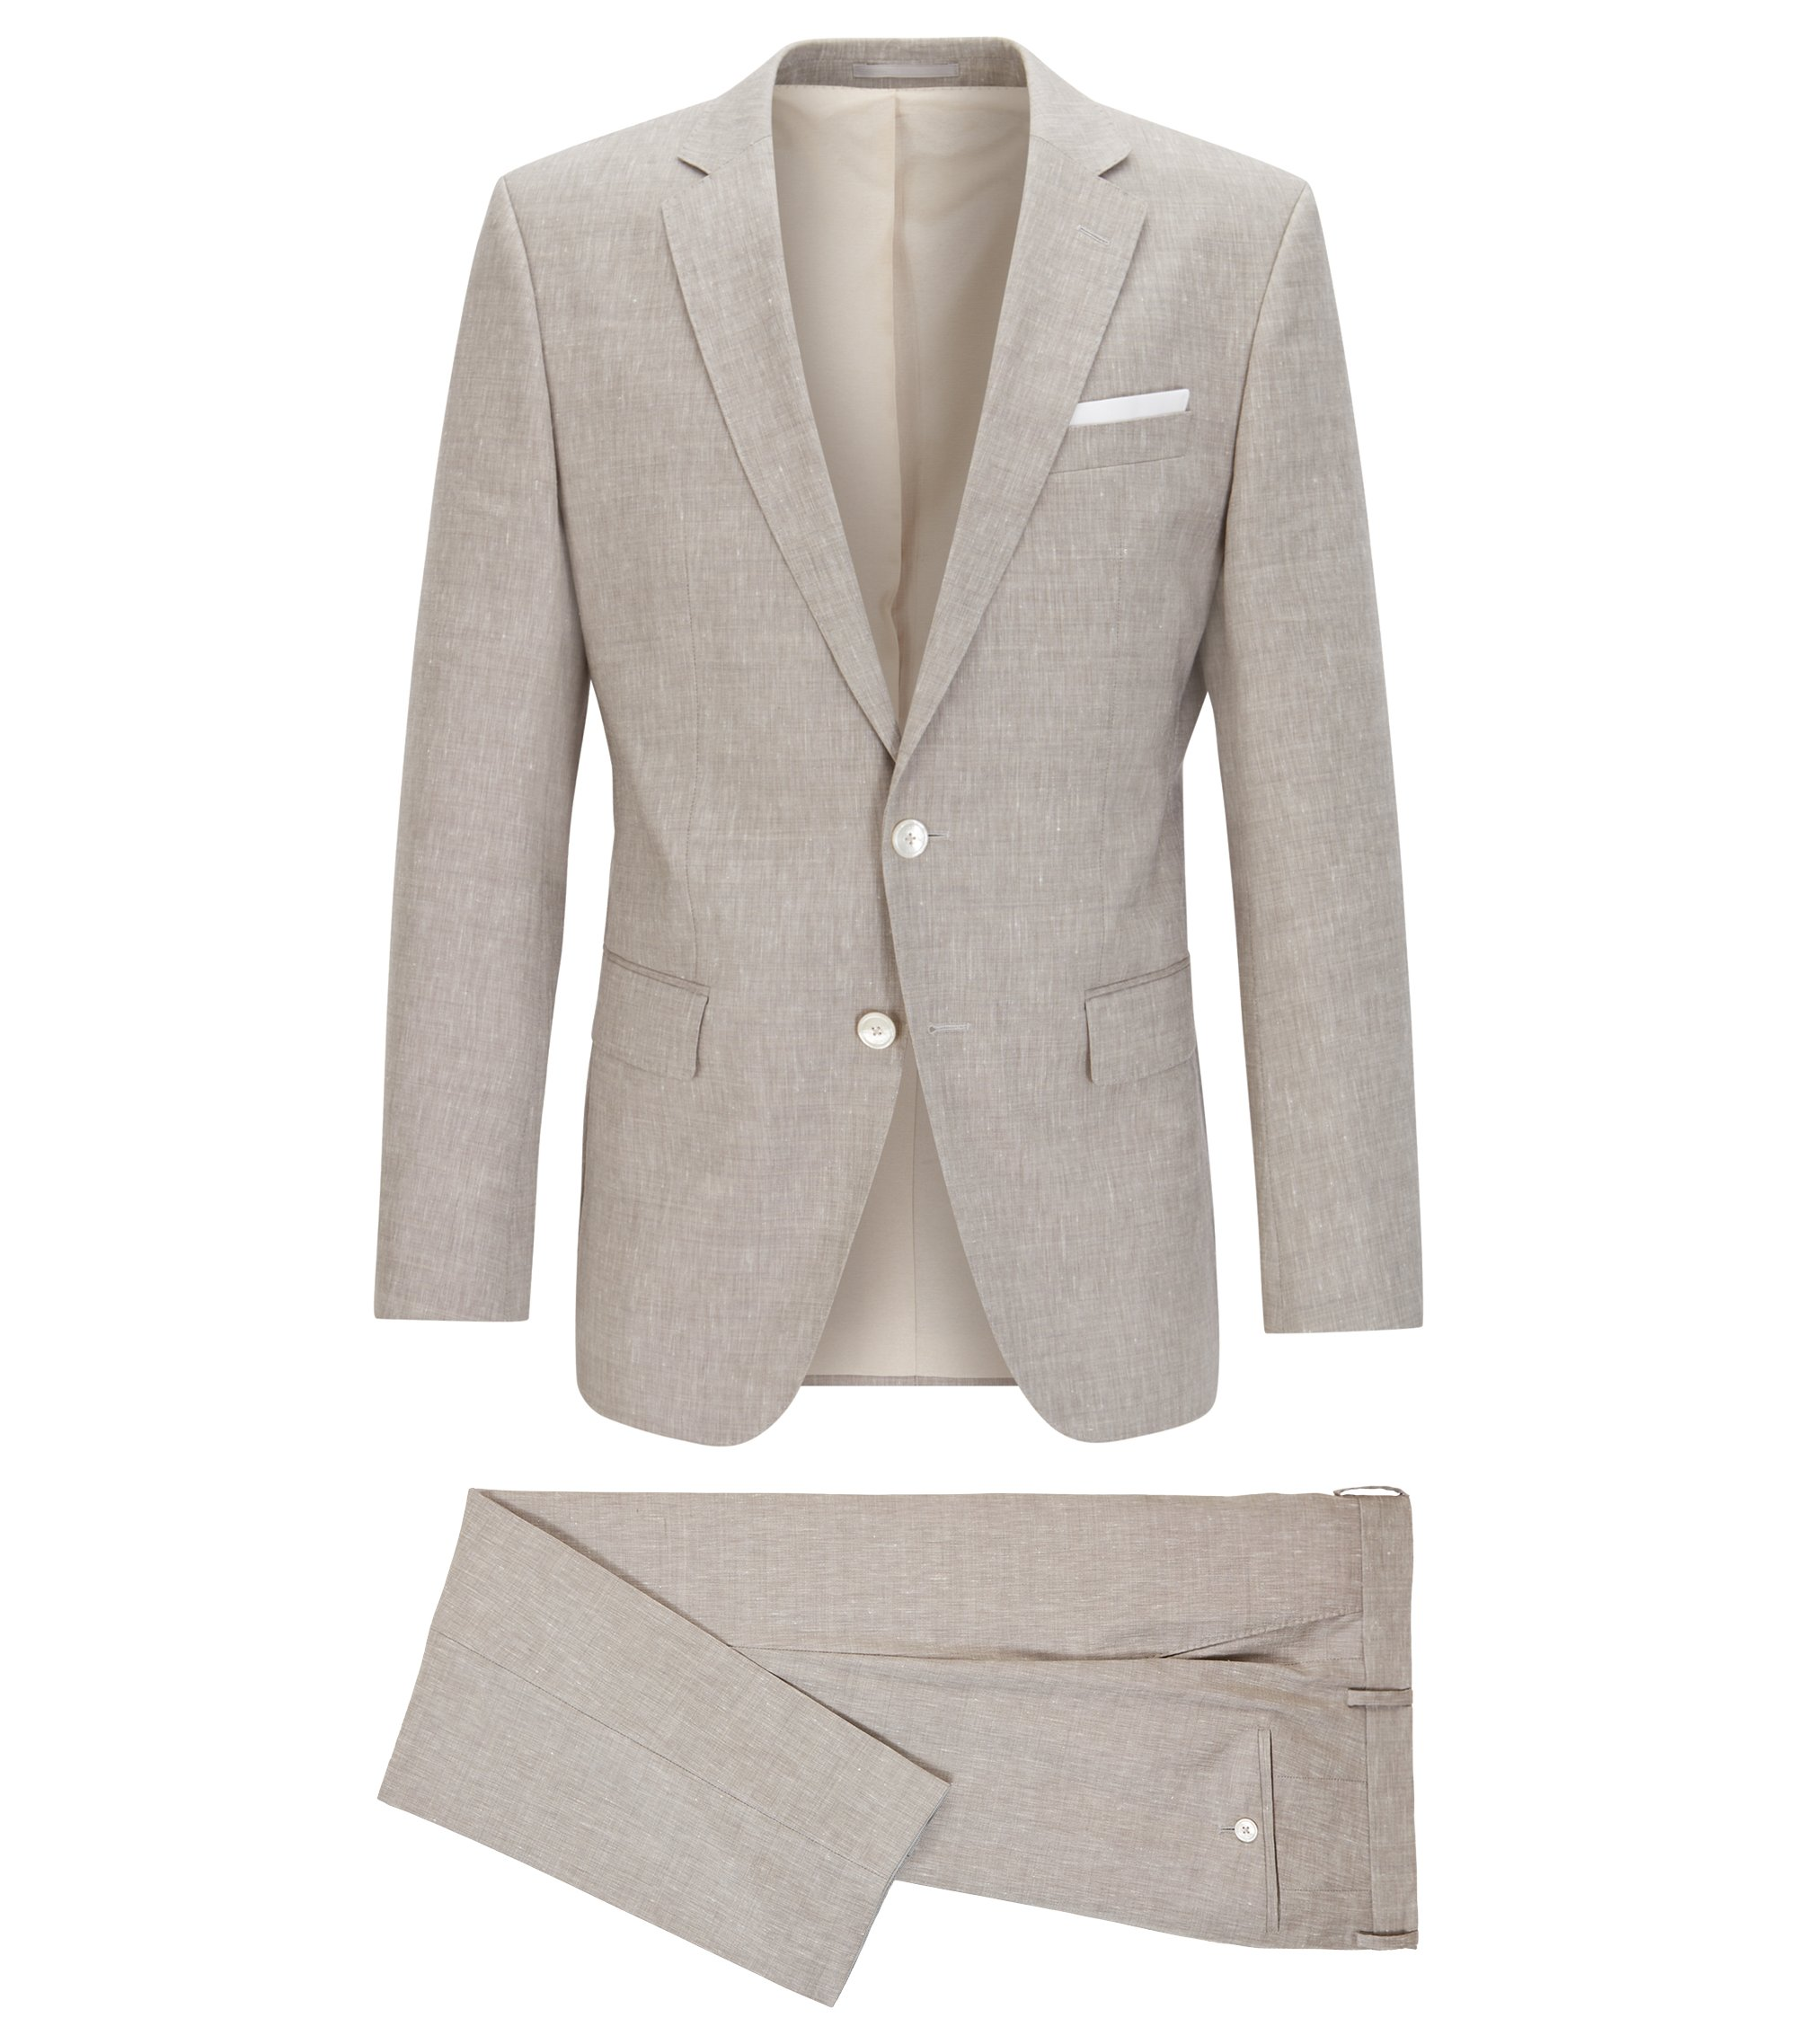 Wool Linen Suit, Slim Fit | Hutson/Gander, Beige